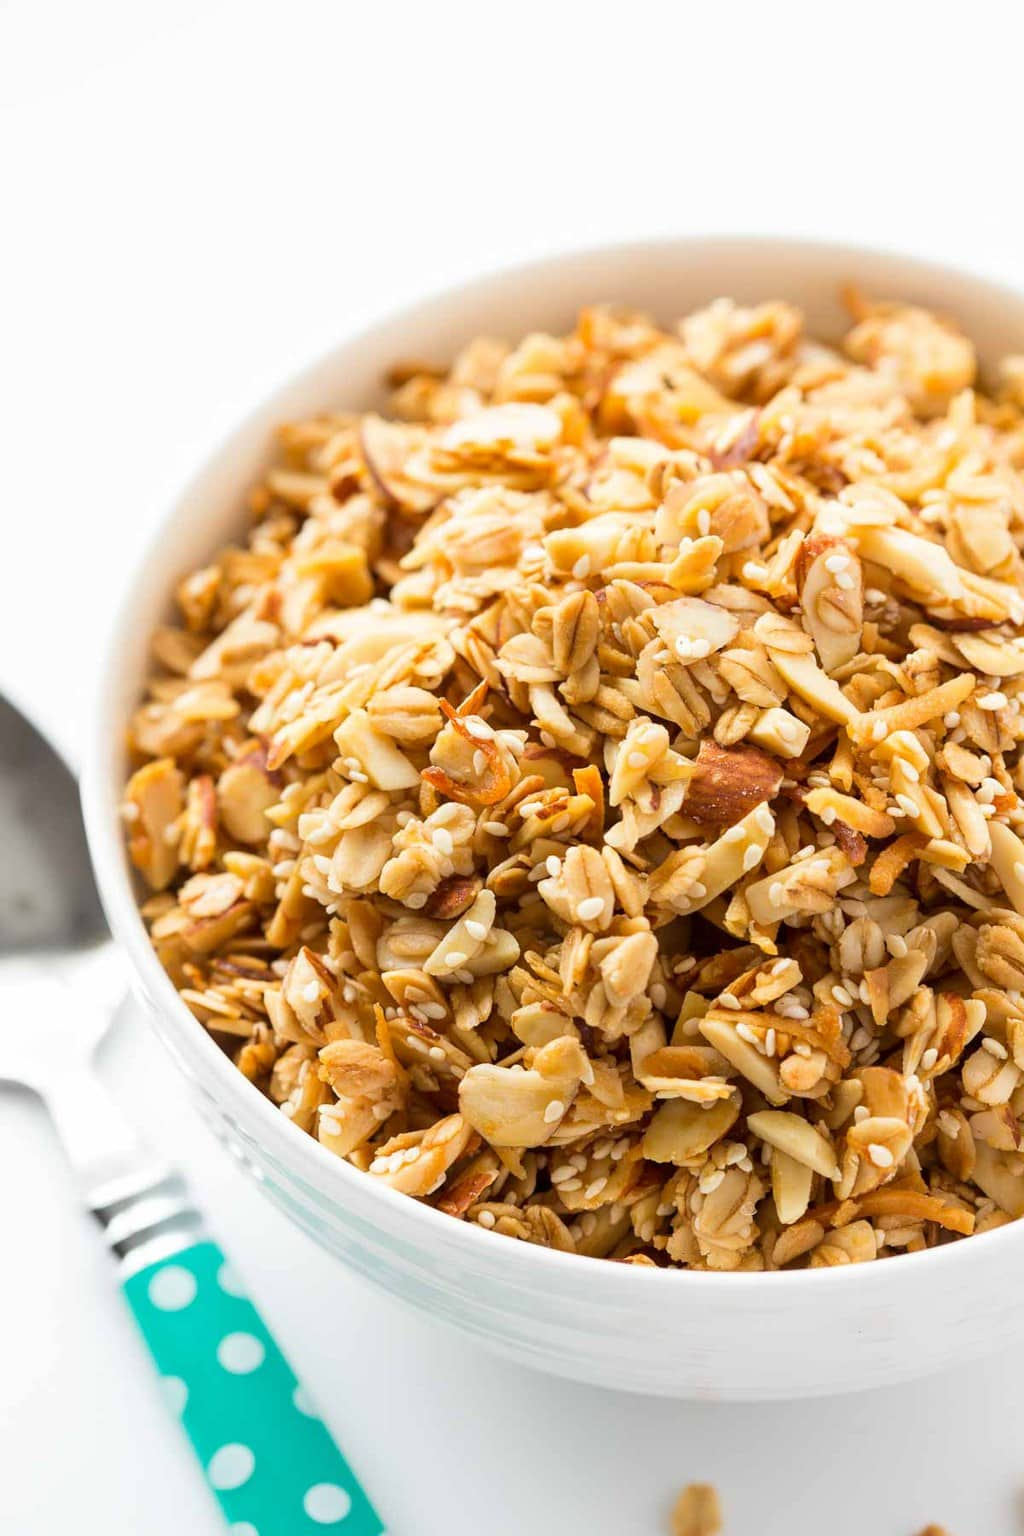 Best Ever Granola - the most addictively delicious granola you'll ever have the pleasure of meeting! thecafesucrefarine.com